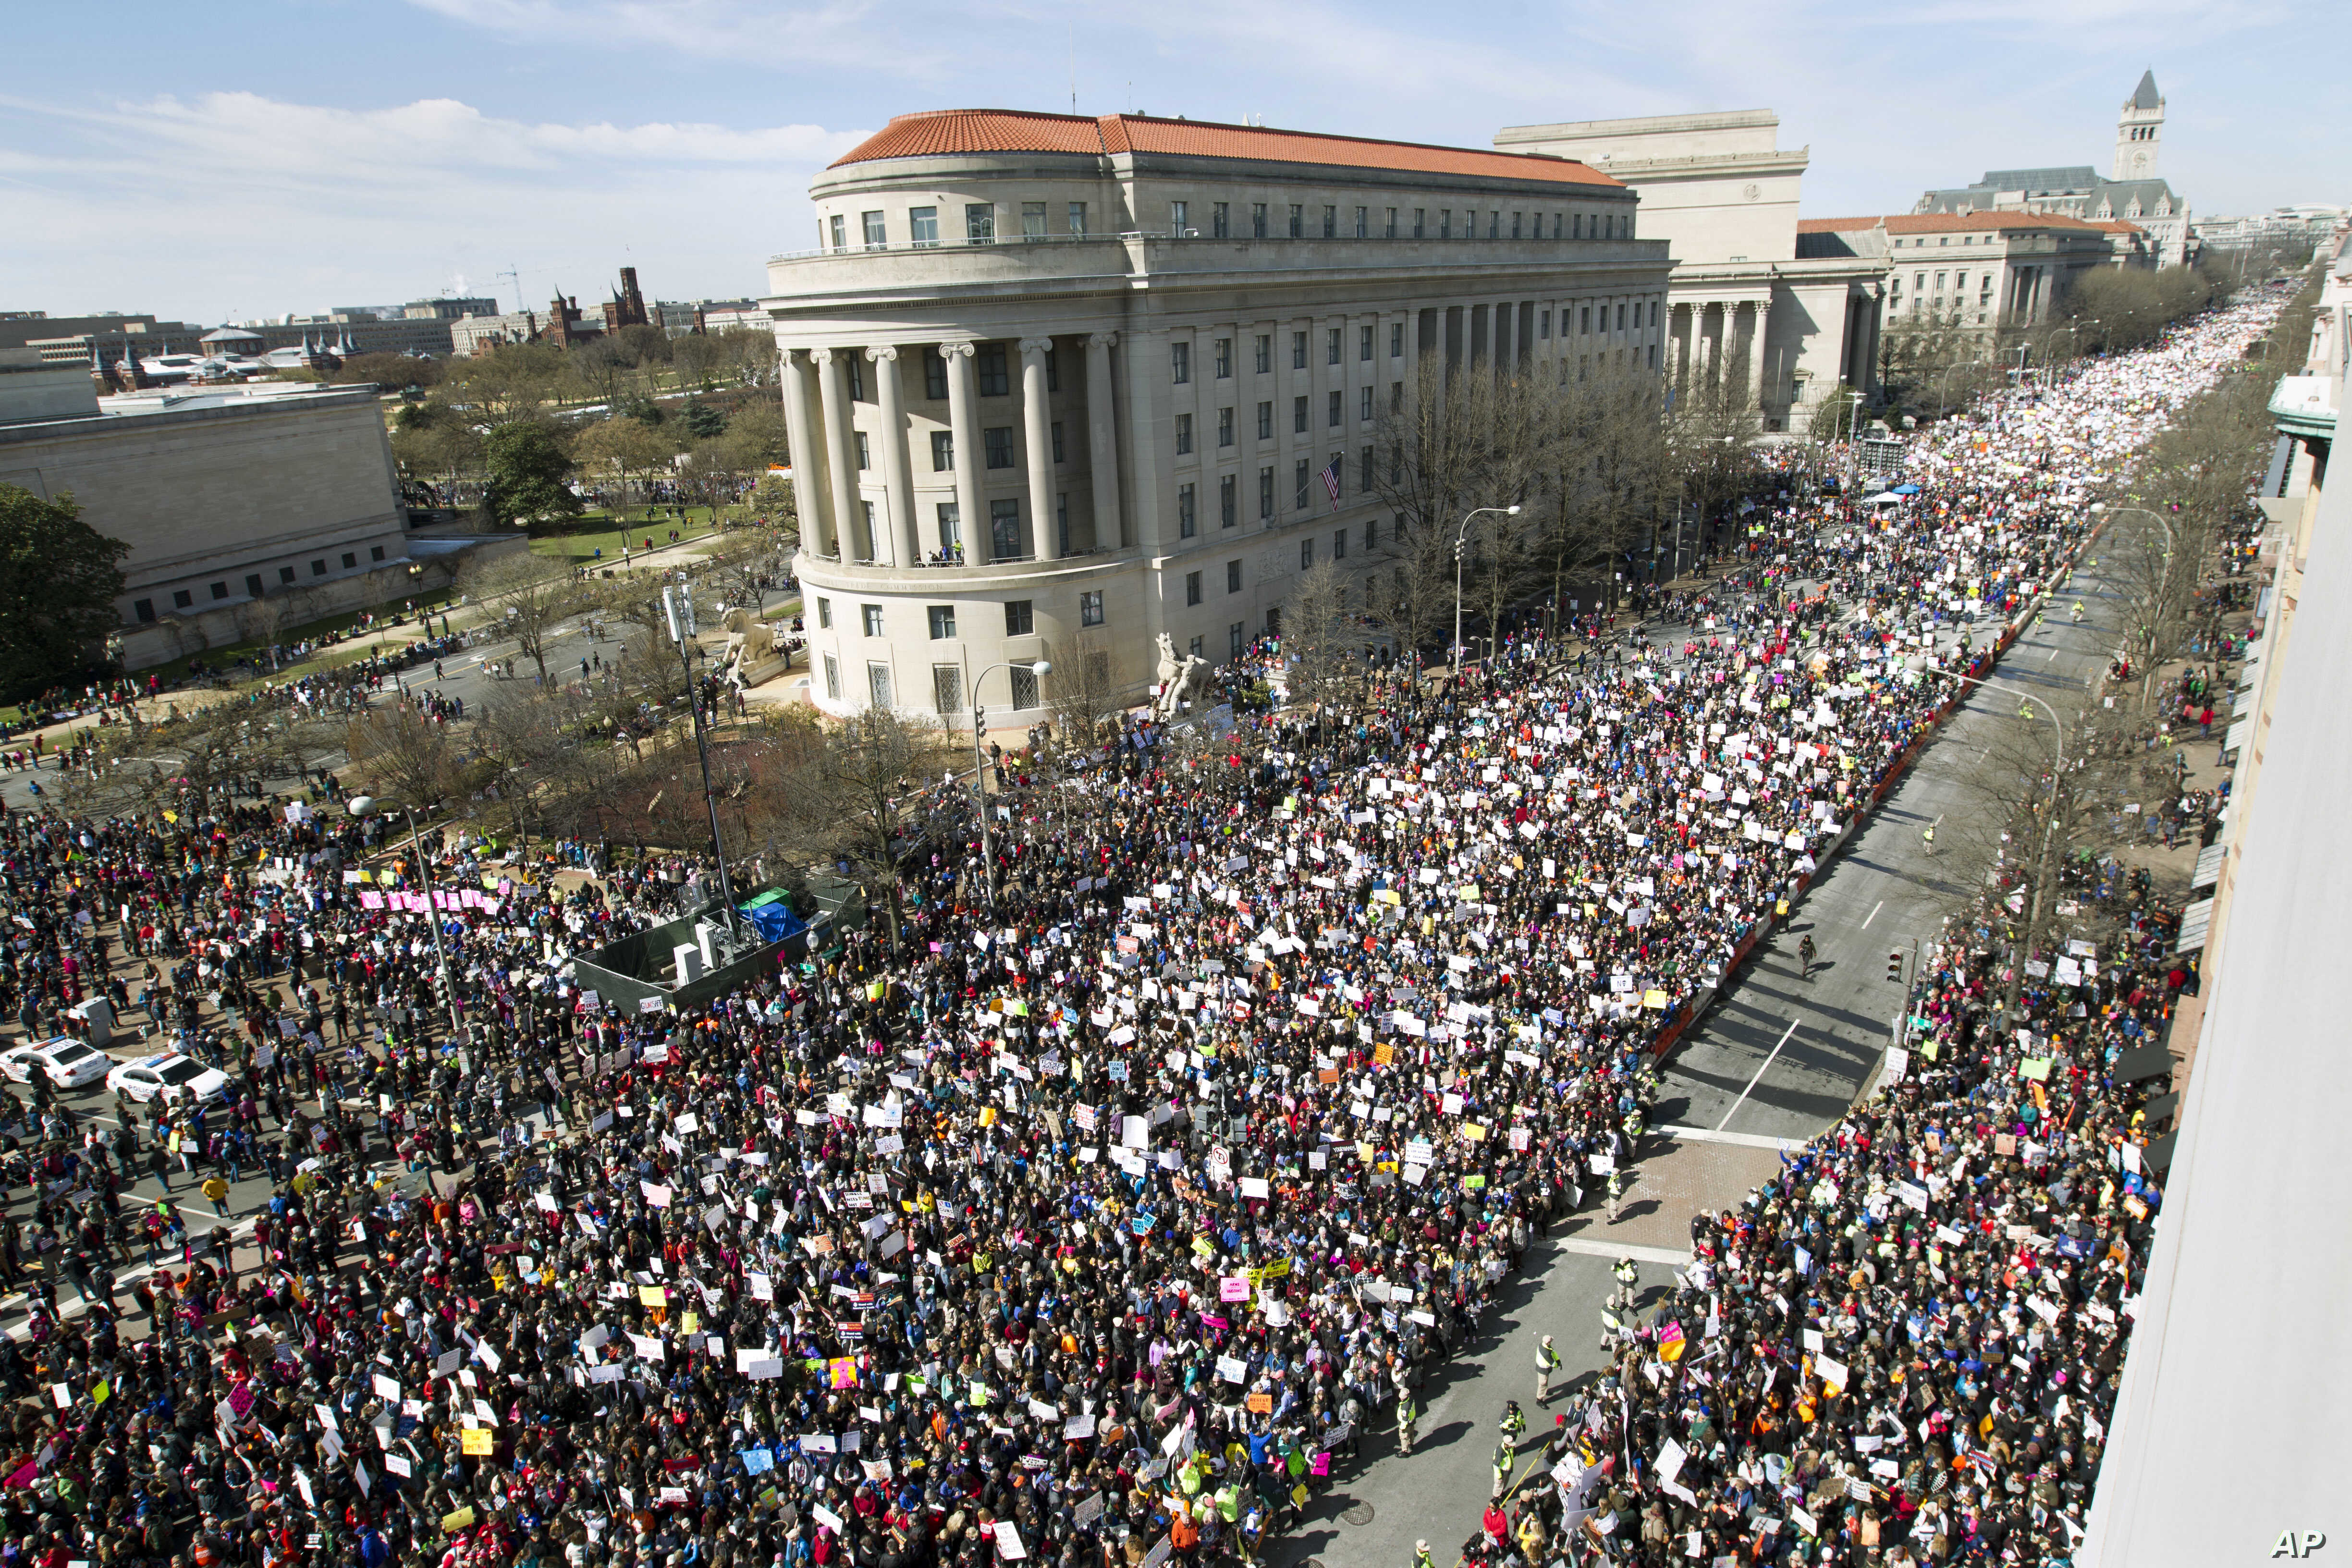 """People fill Pennsylvania Avenue during the """"March for Our Lives"""" rally in support of gun control in Washington, March 24, 2018."""